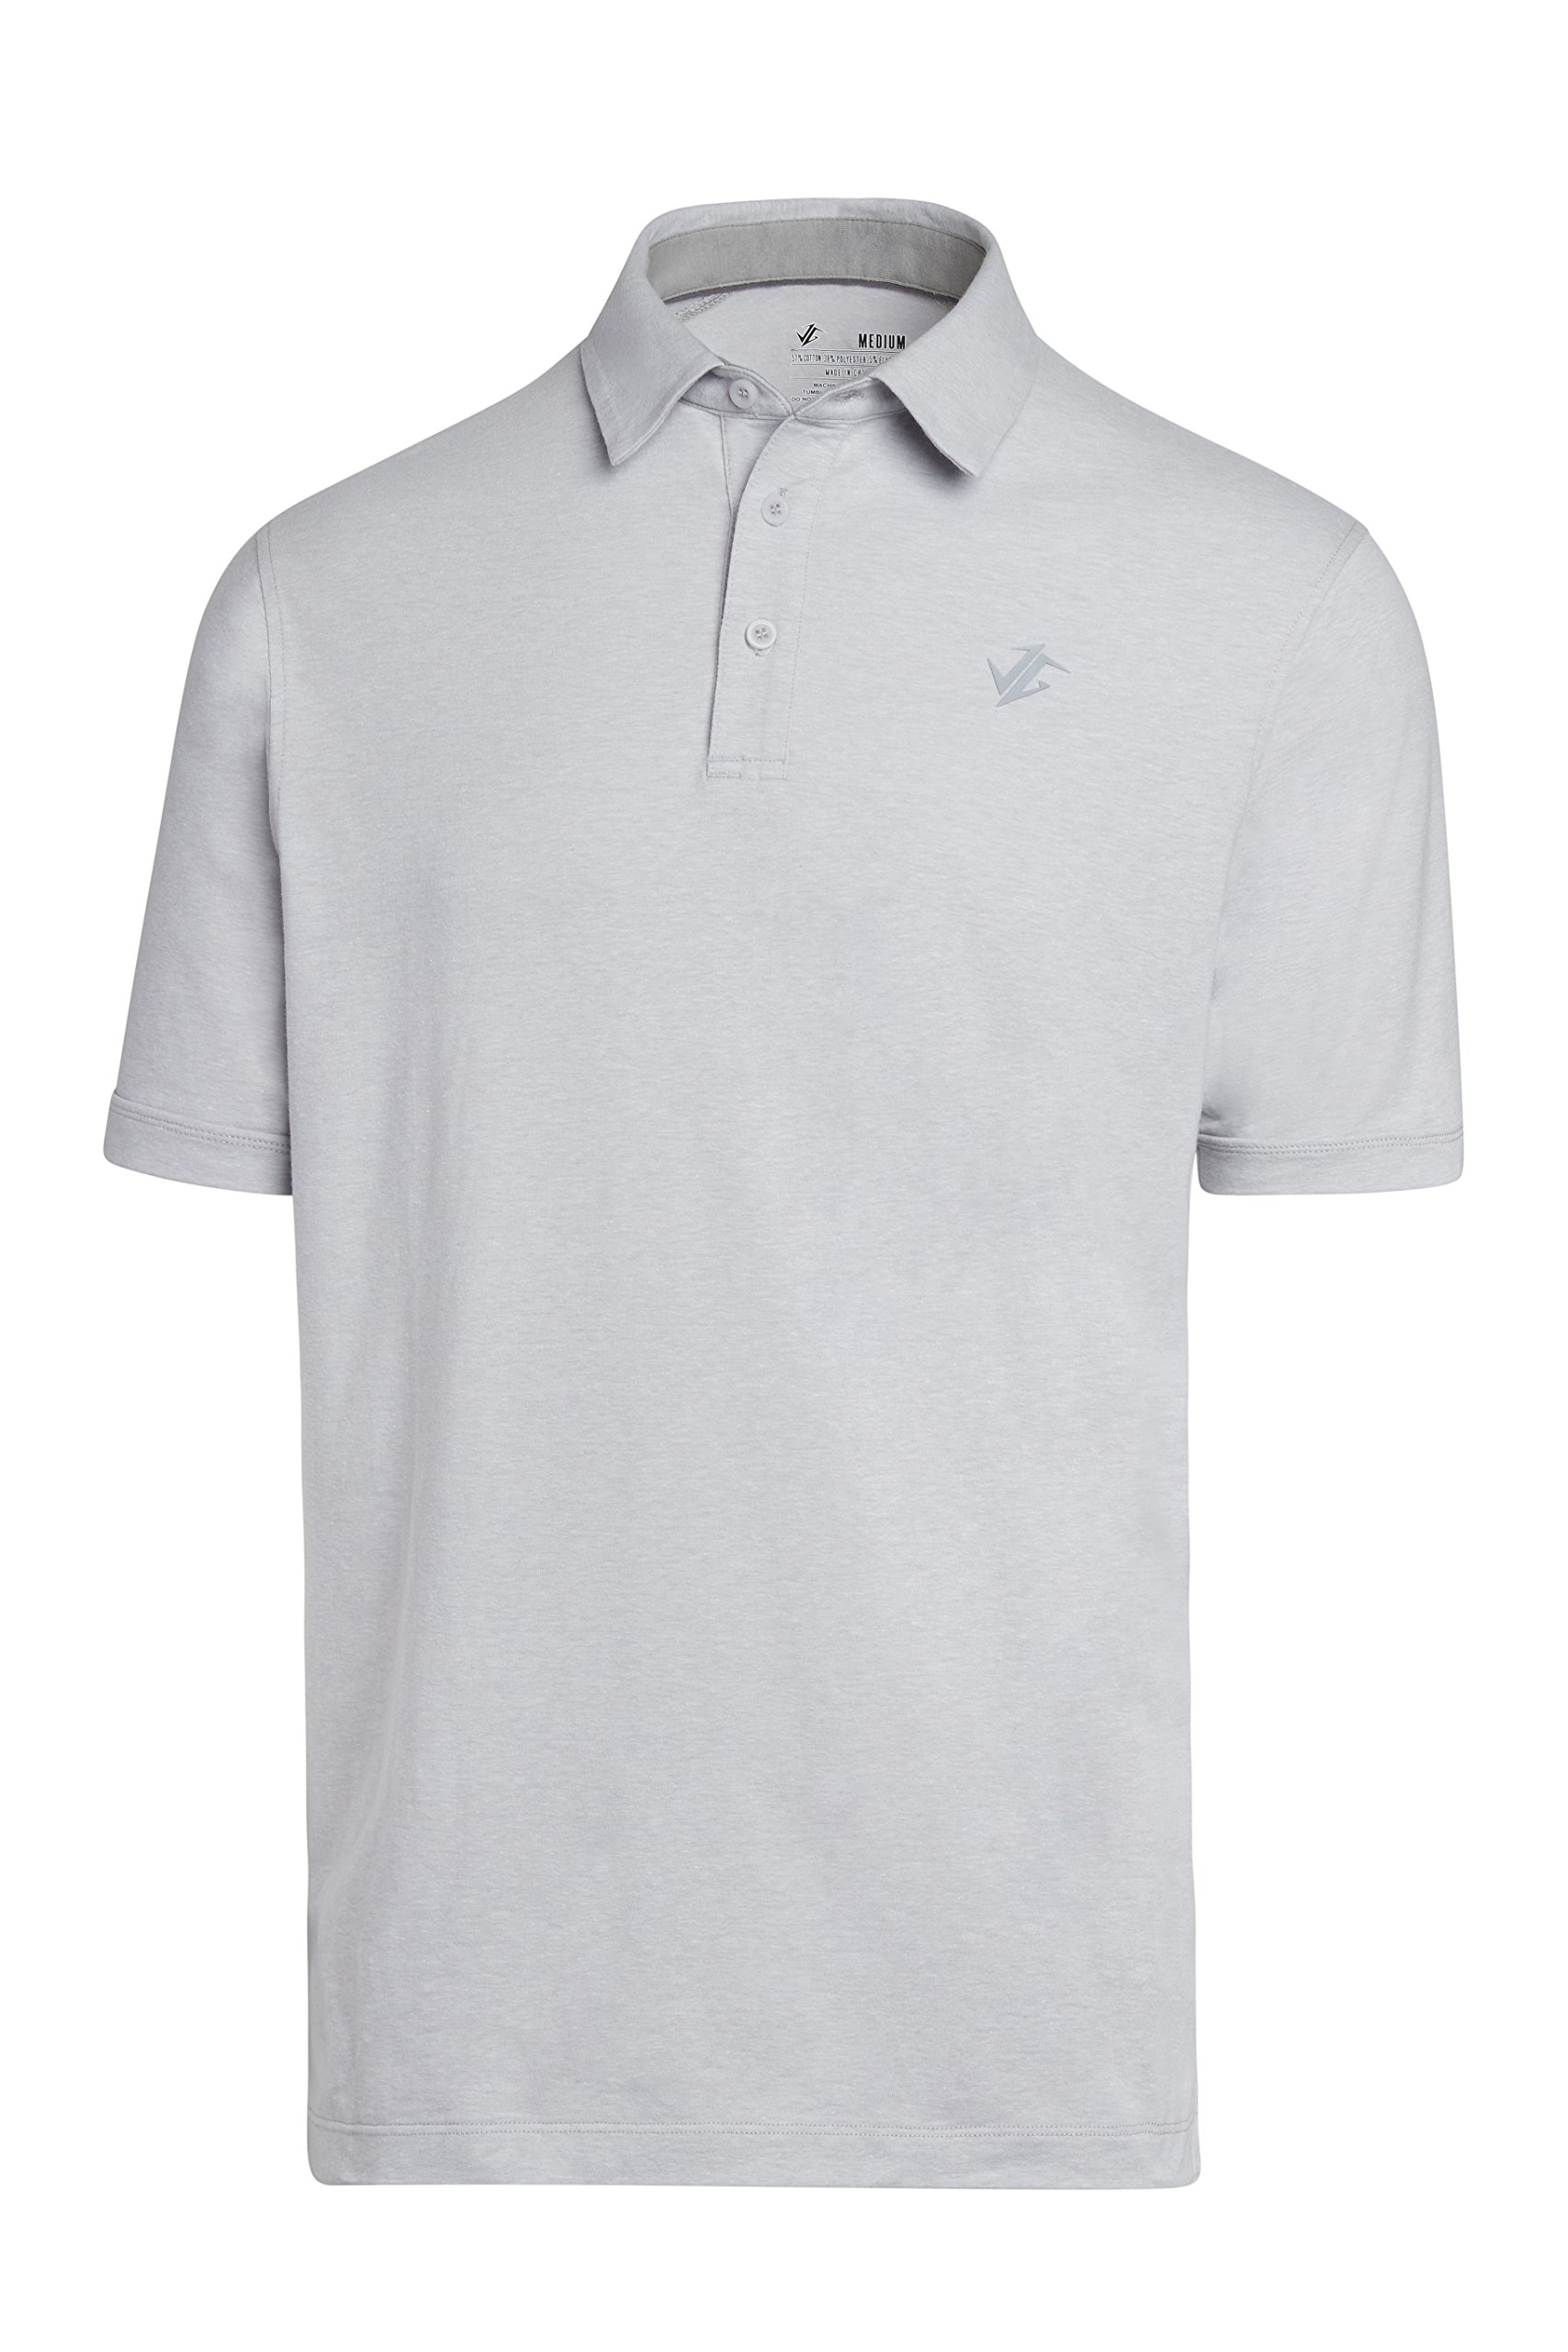 Jolt Gear Golf Shirts for Men - Dry Fit Cotton Polo Shirt - Includes 20 Golfing Tees